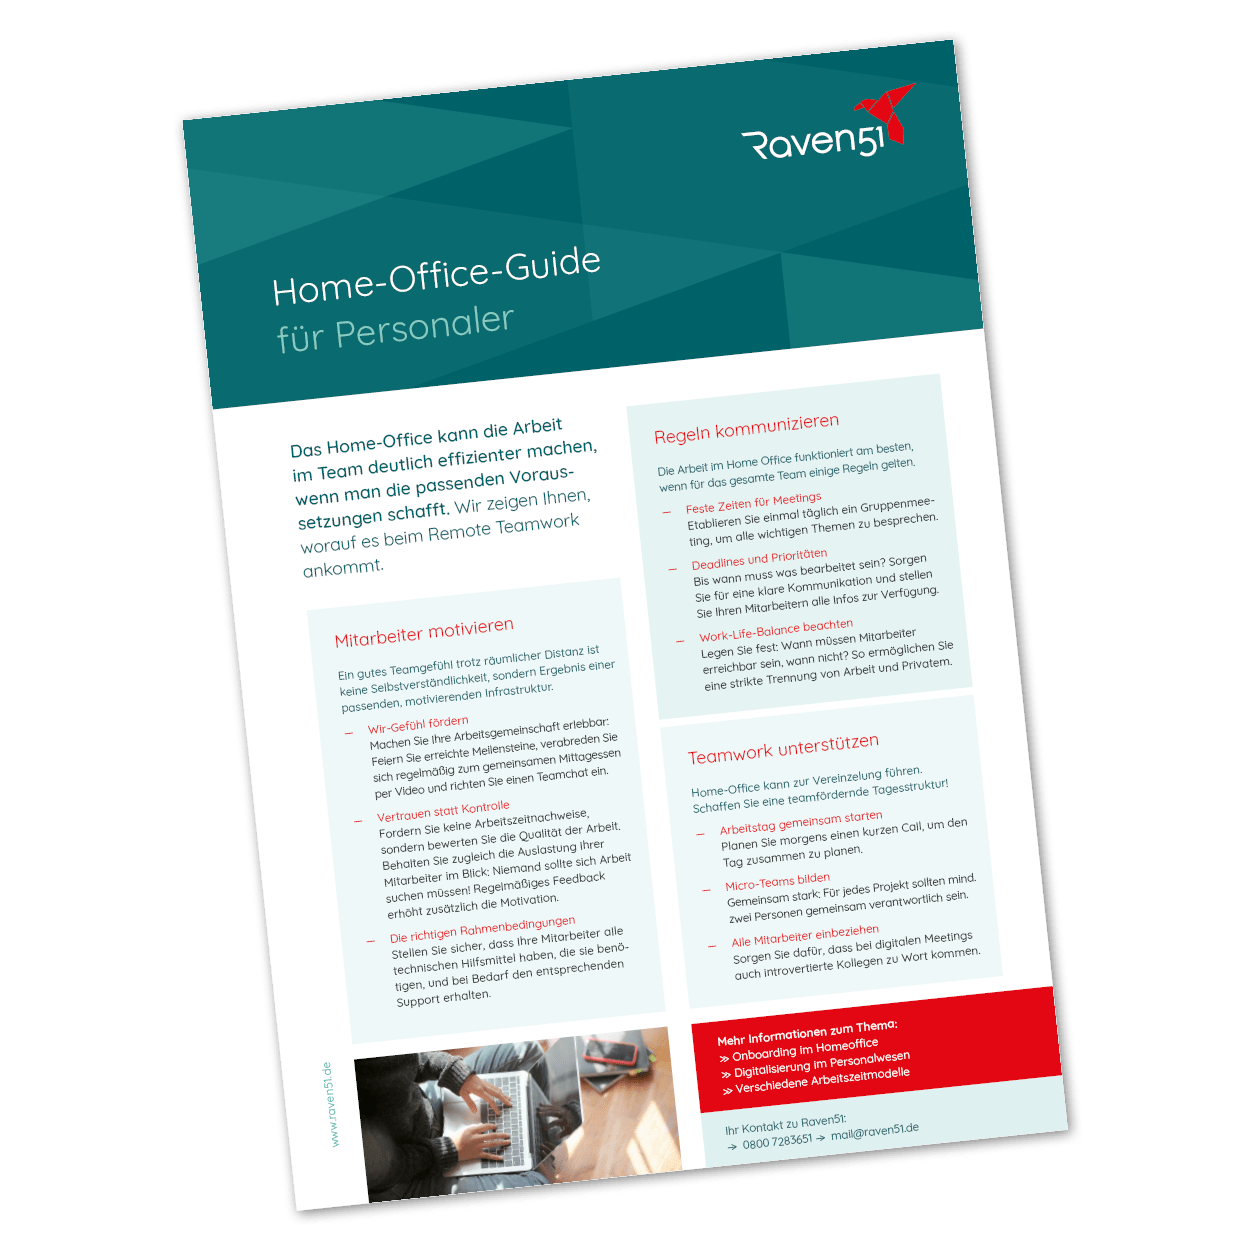 Home-Office-Guide fuer Personaler